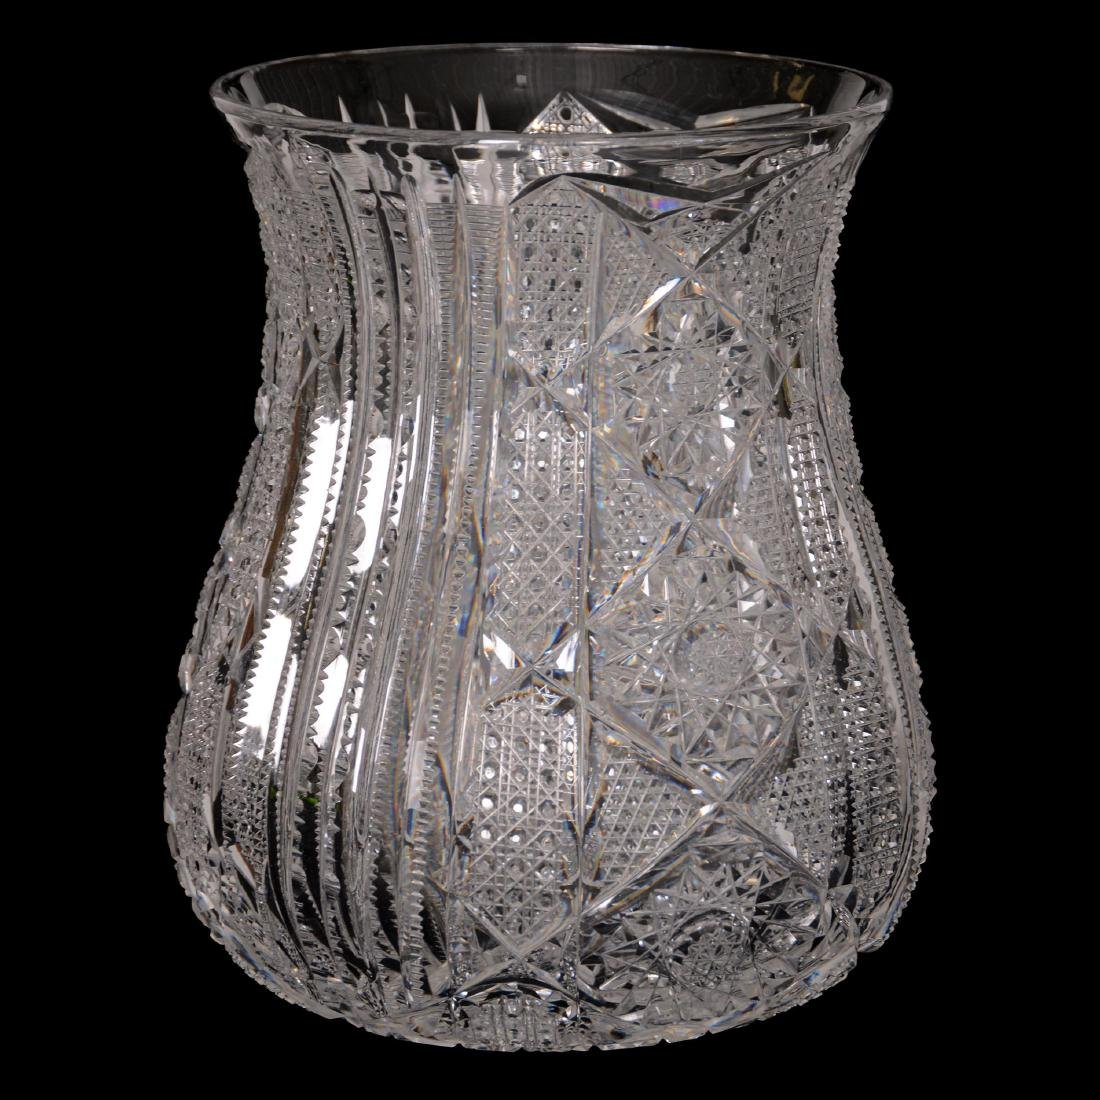 Large Corset Shaped Vase - ABCG